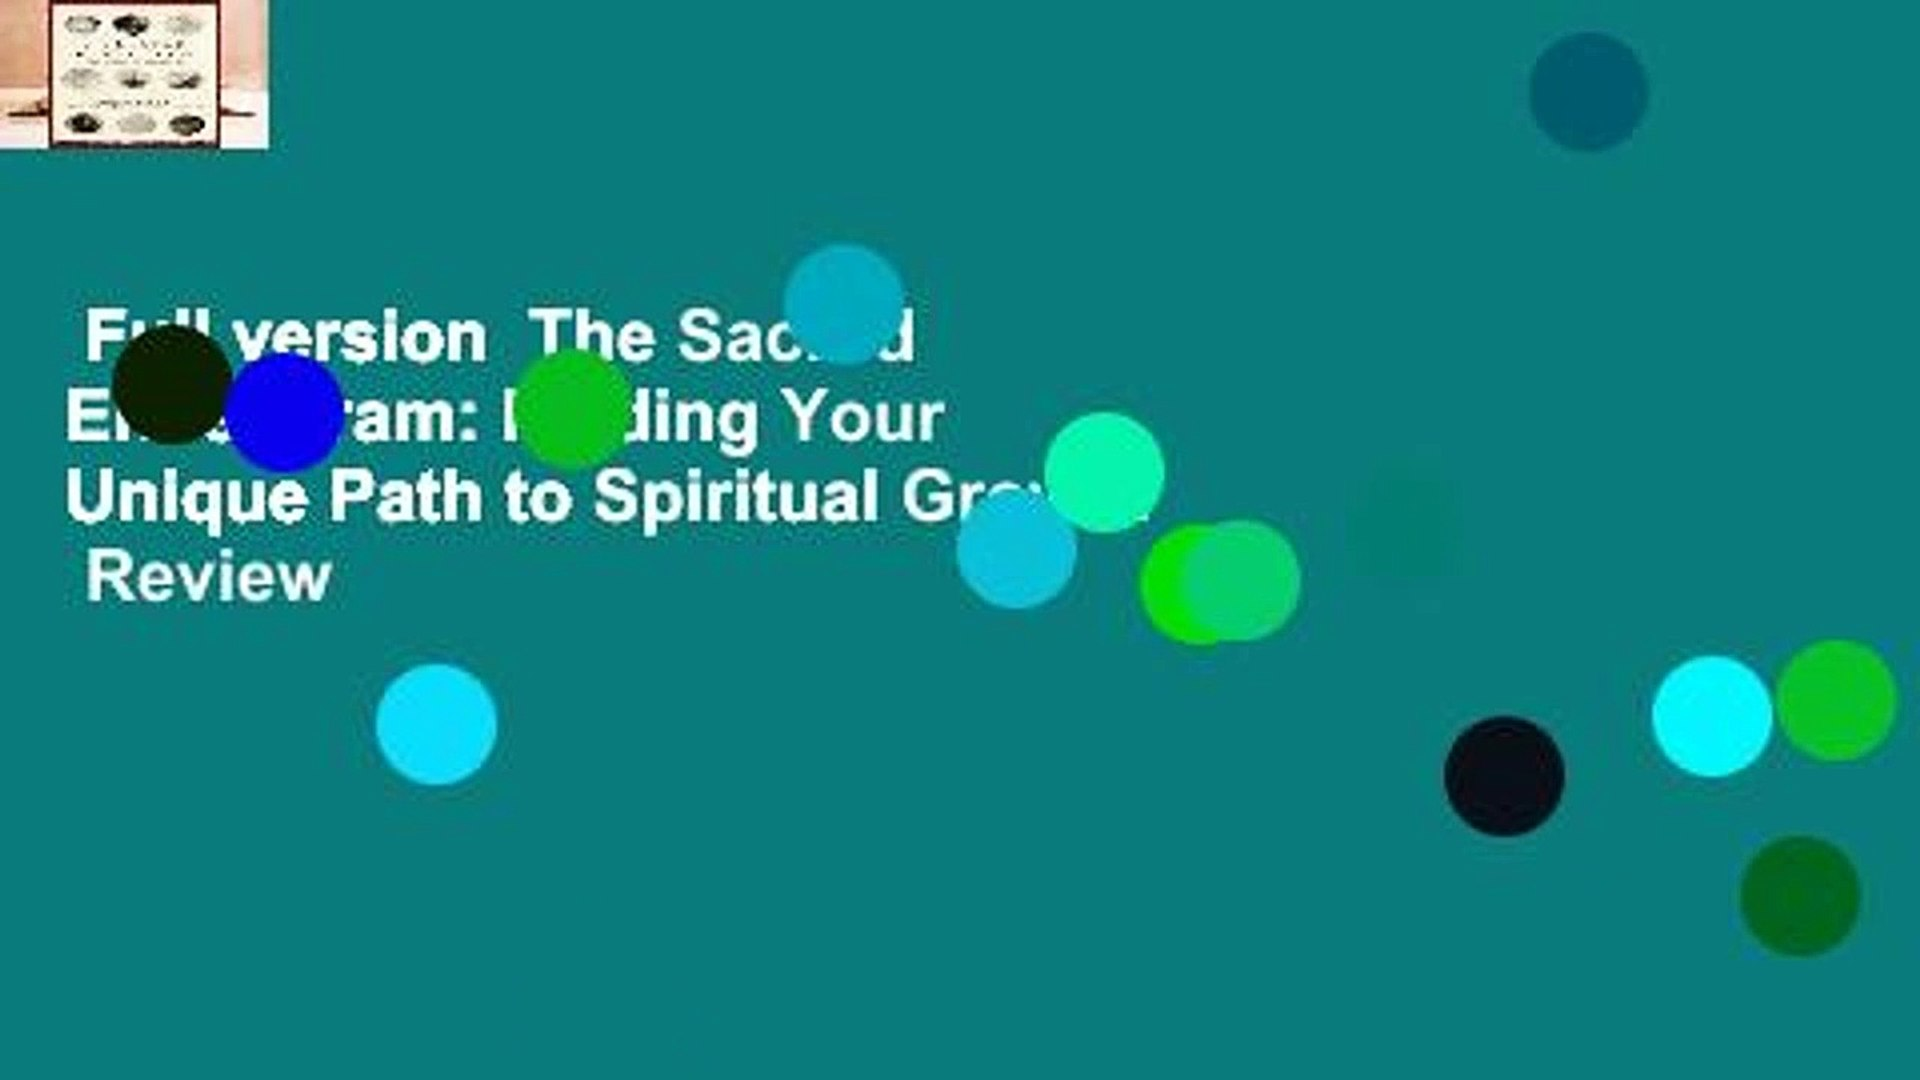 Full version  The Sacred Enneagram: Finding Your Unique Path to Spiritual Growth  Review